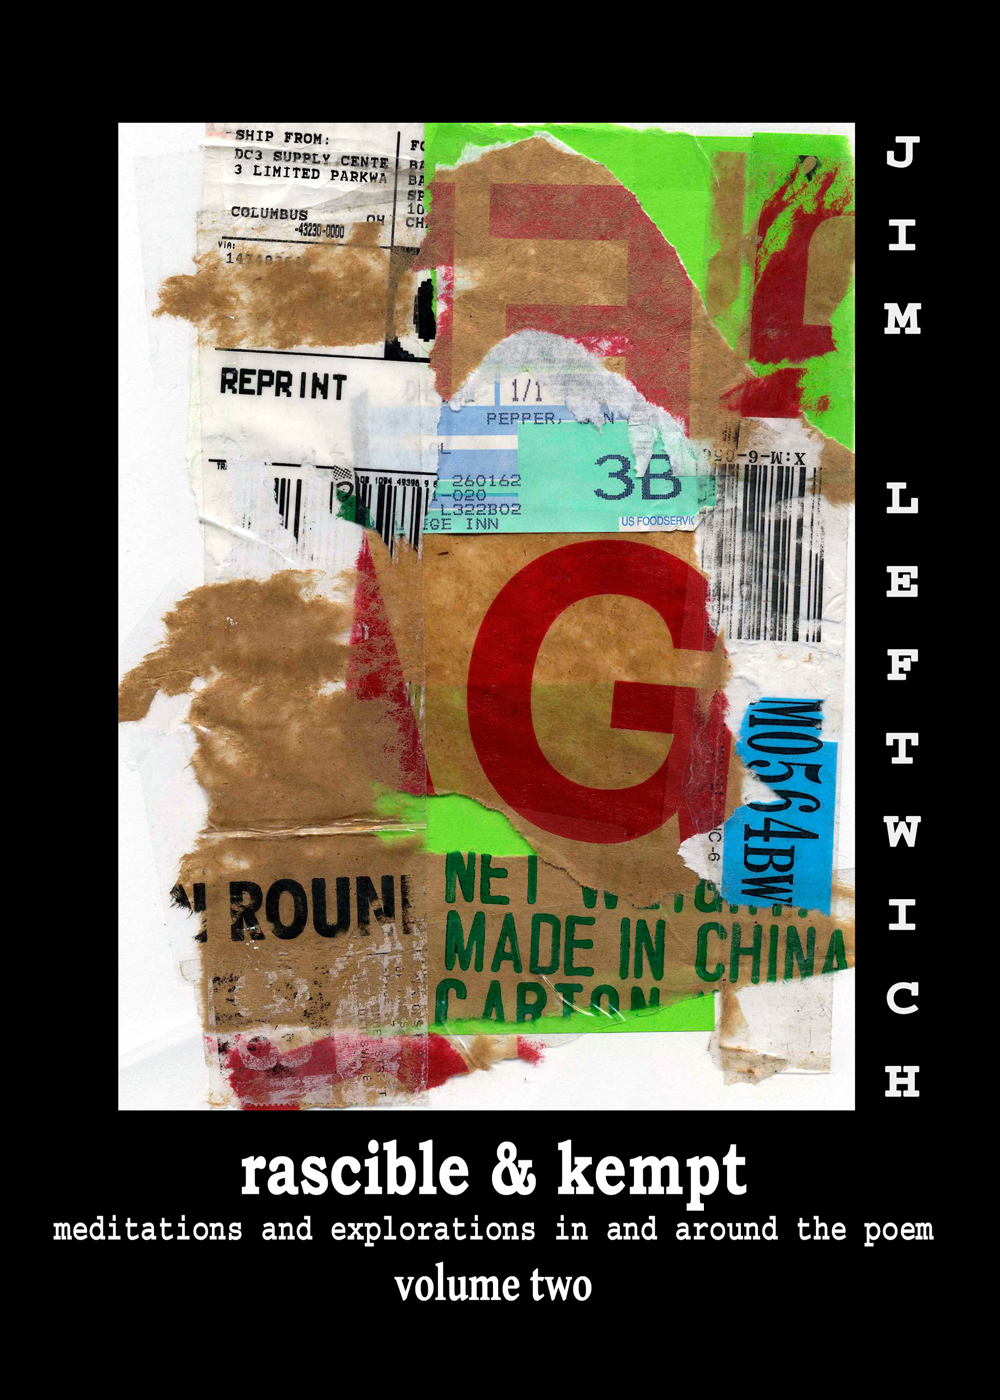 Rascible & Kempt: Meditations and Explorations in and Around the Poem, vol. 2